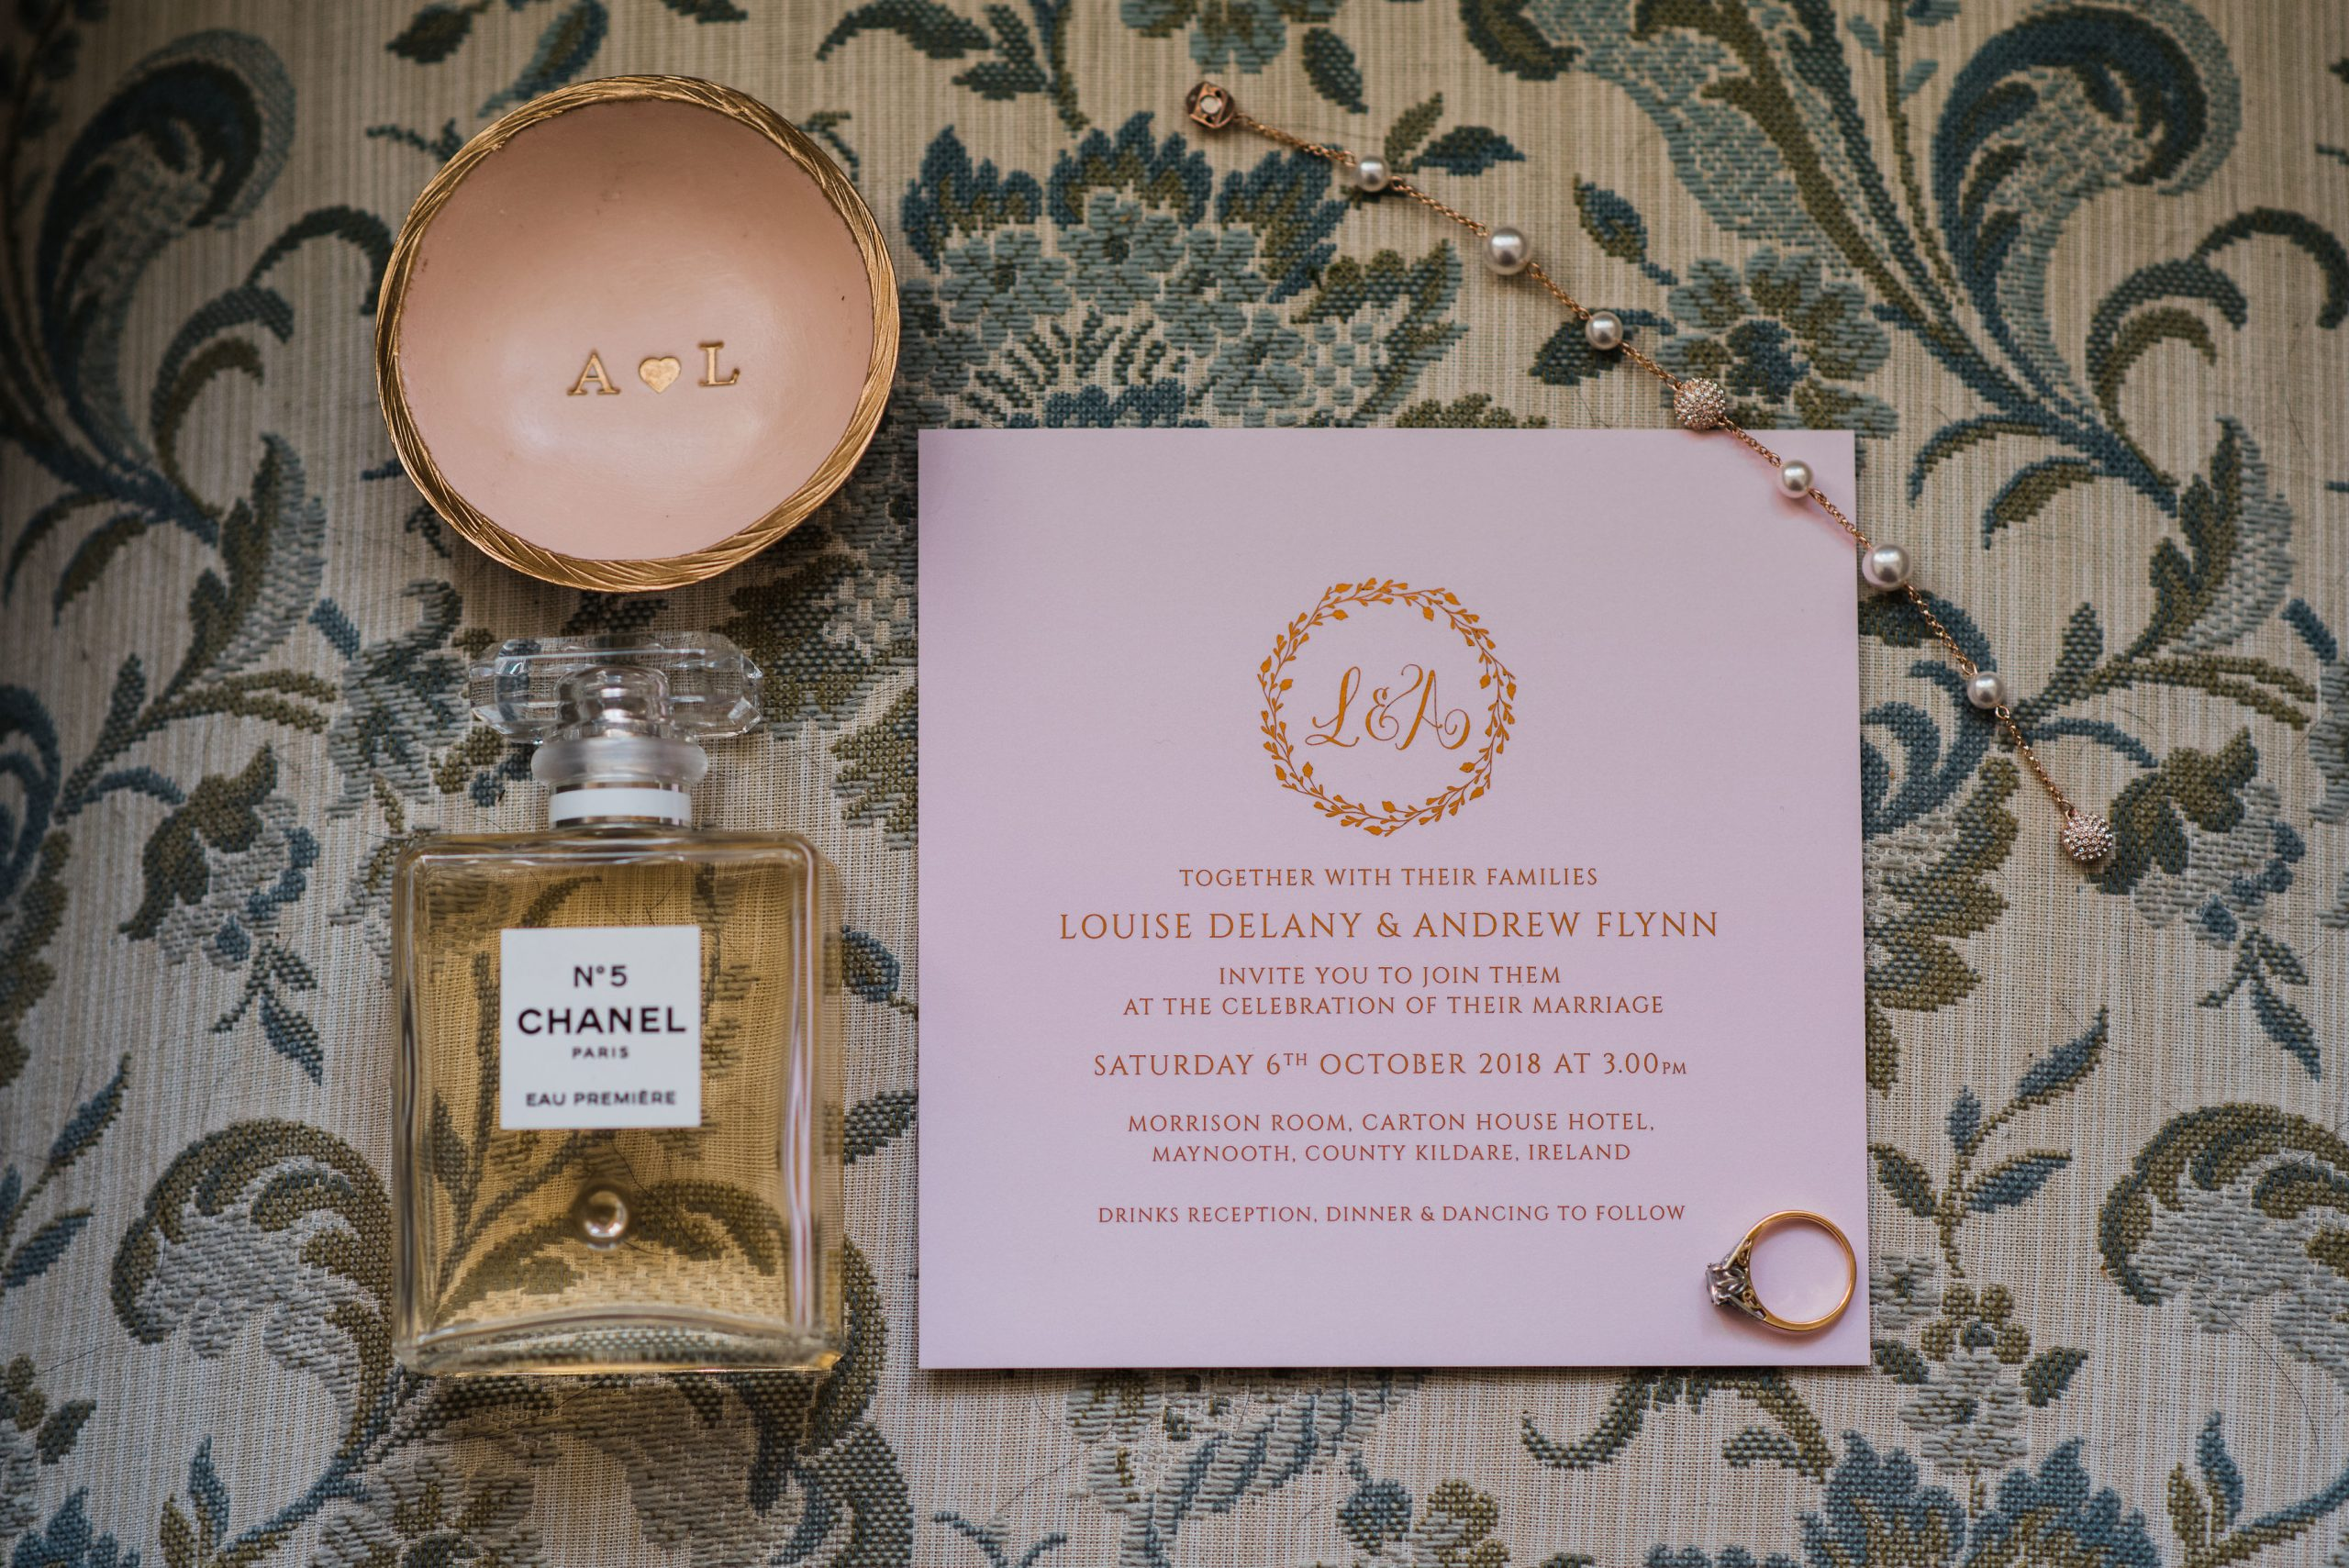 Pink wedding invitation lying beside Chanel perfume and ring dish